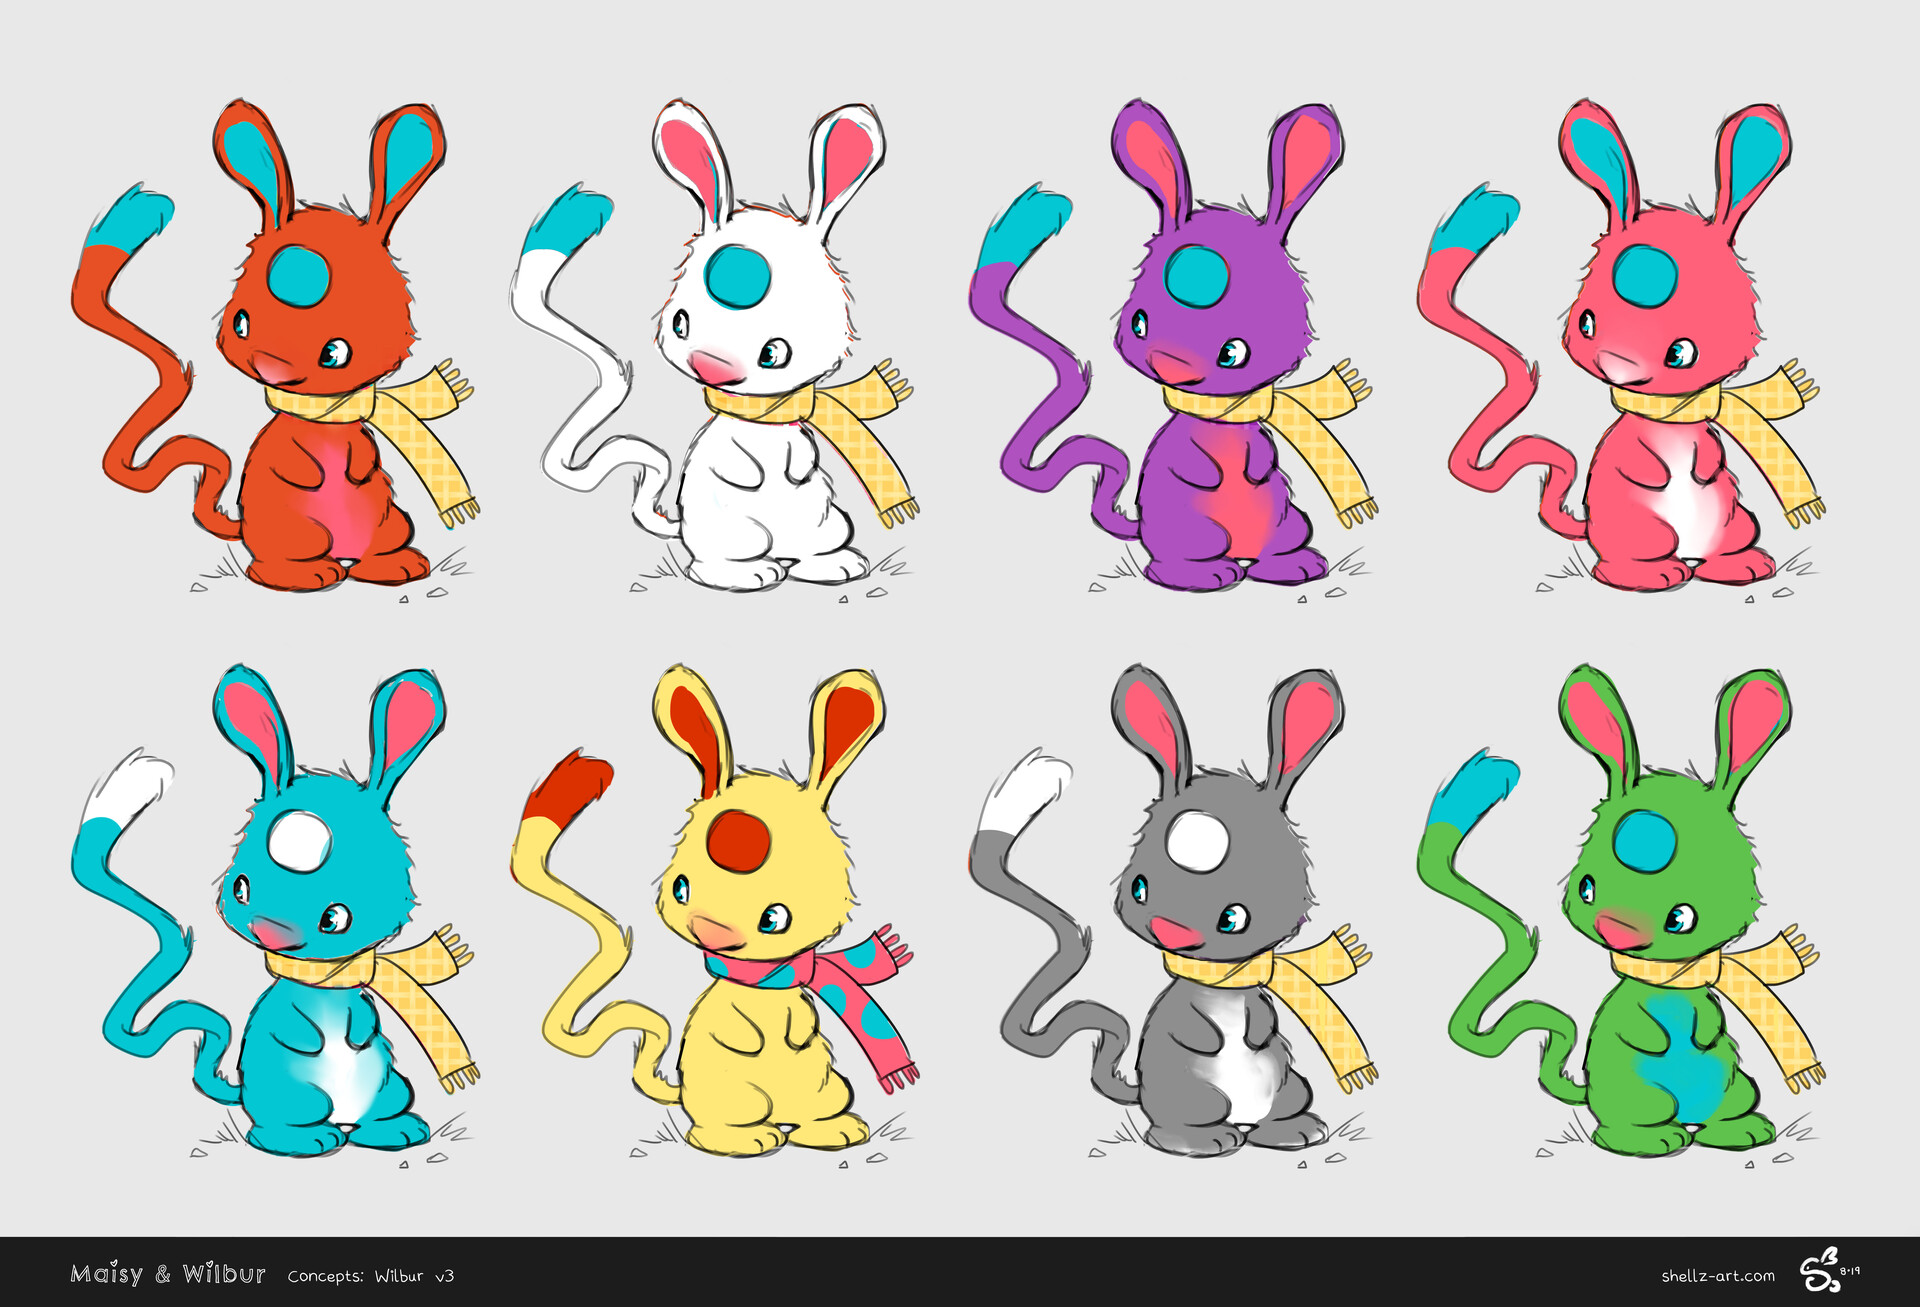 Colour concepts for Wilbur